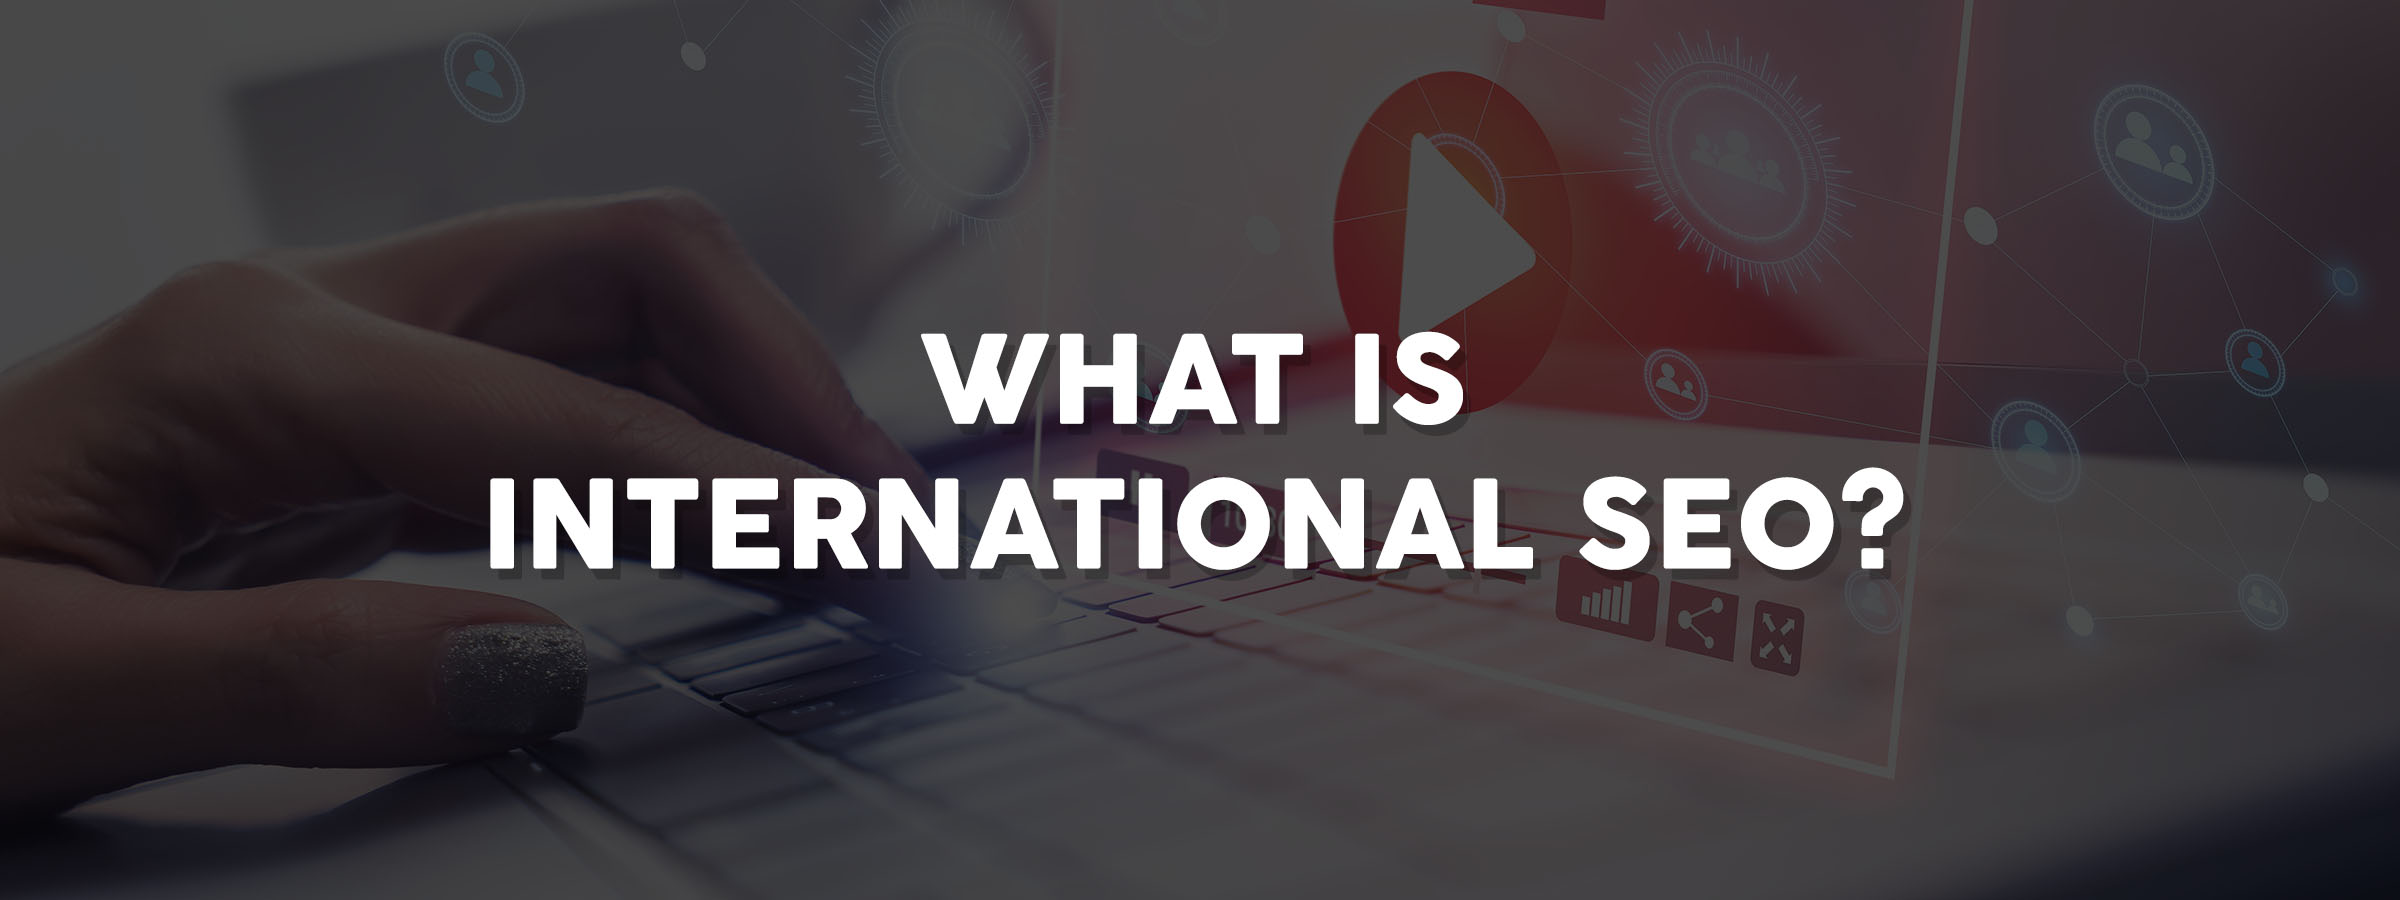 What Is International SEO?